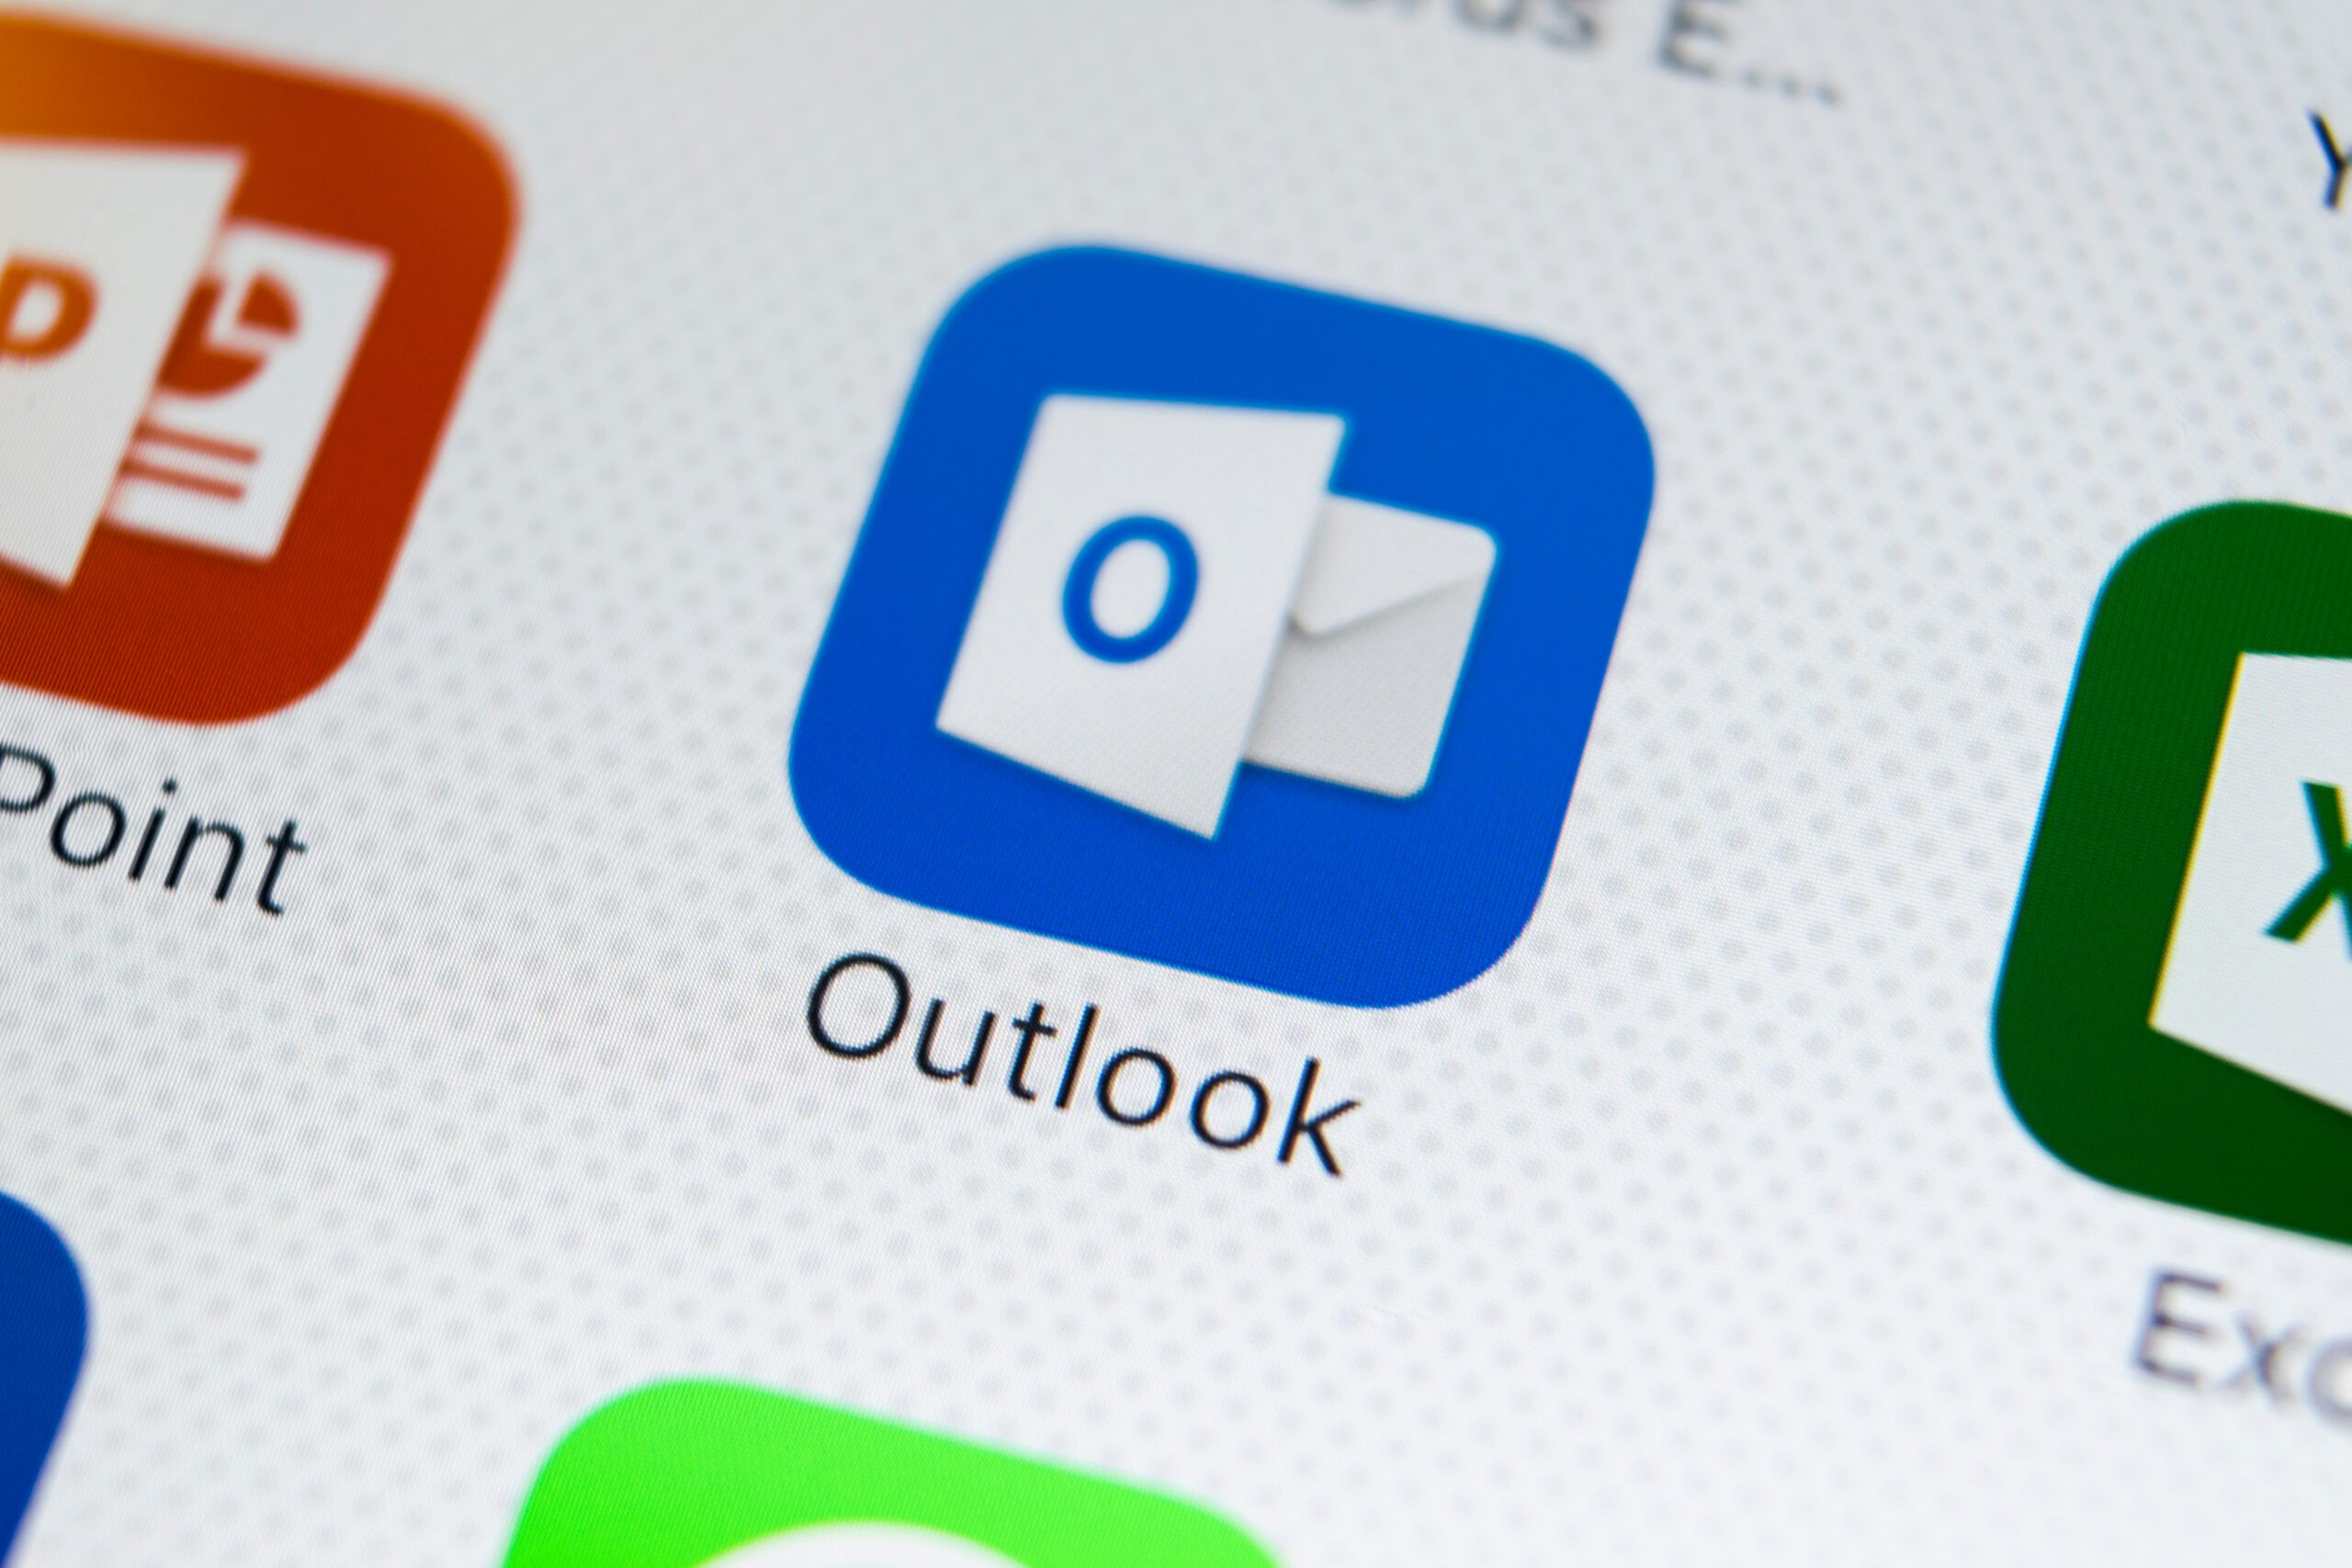 Delete Outlook Email